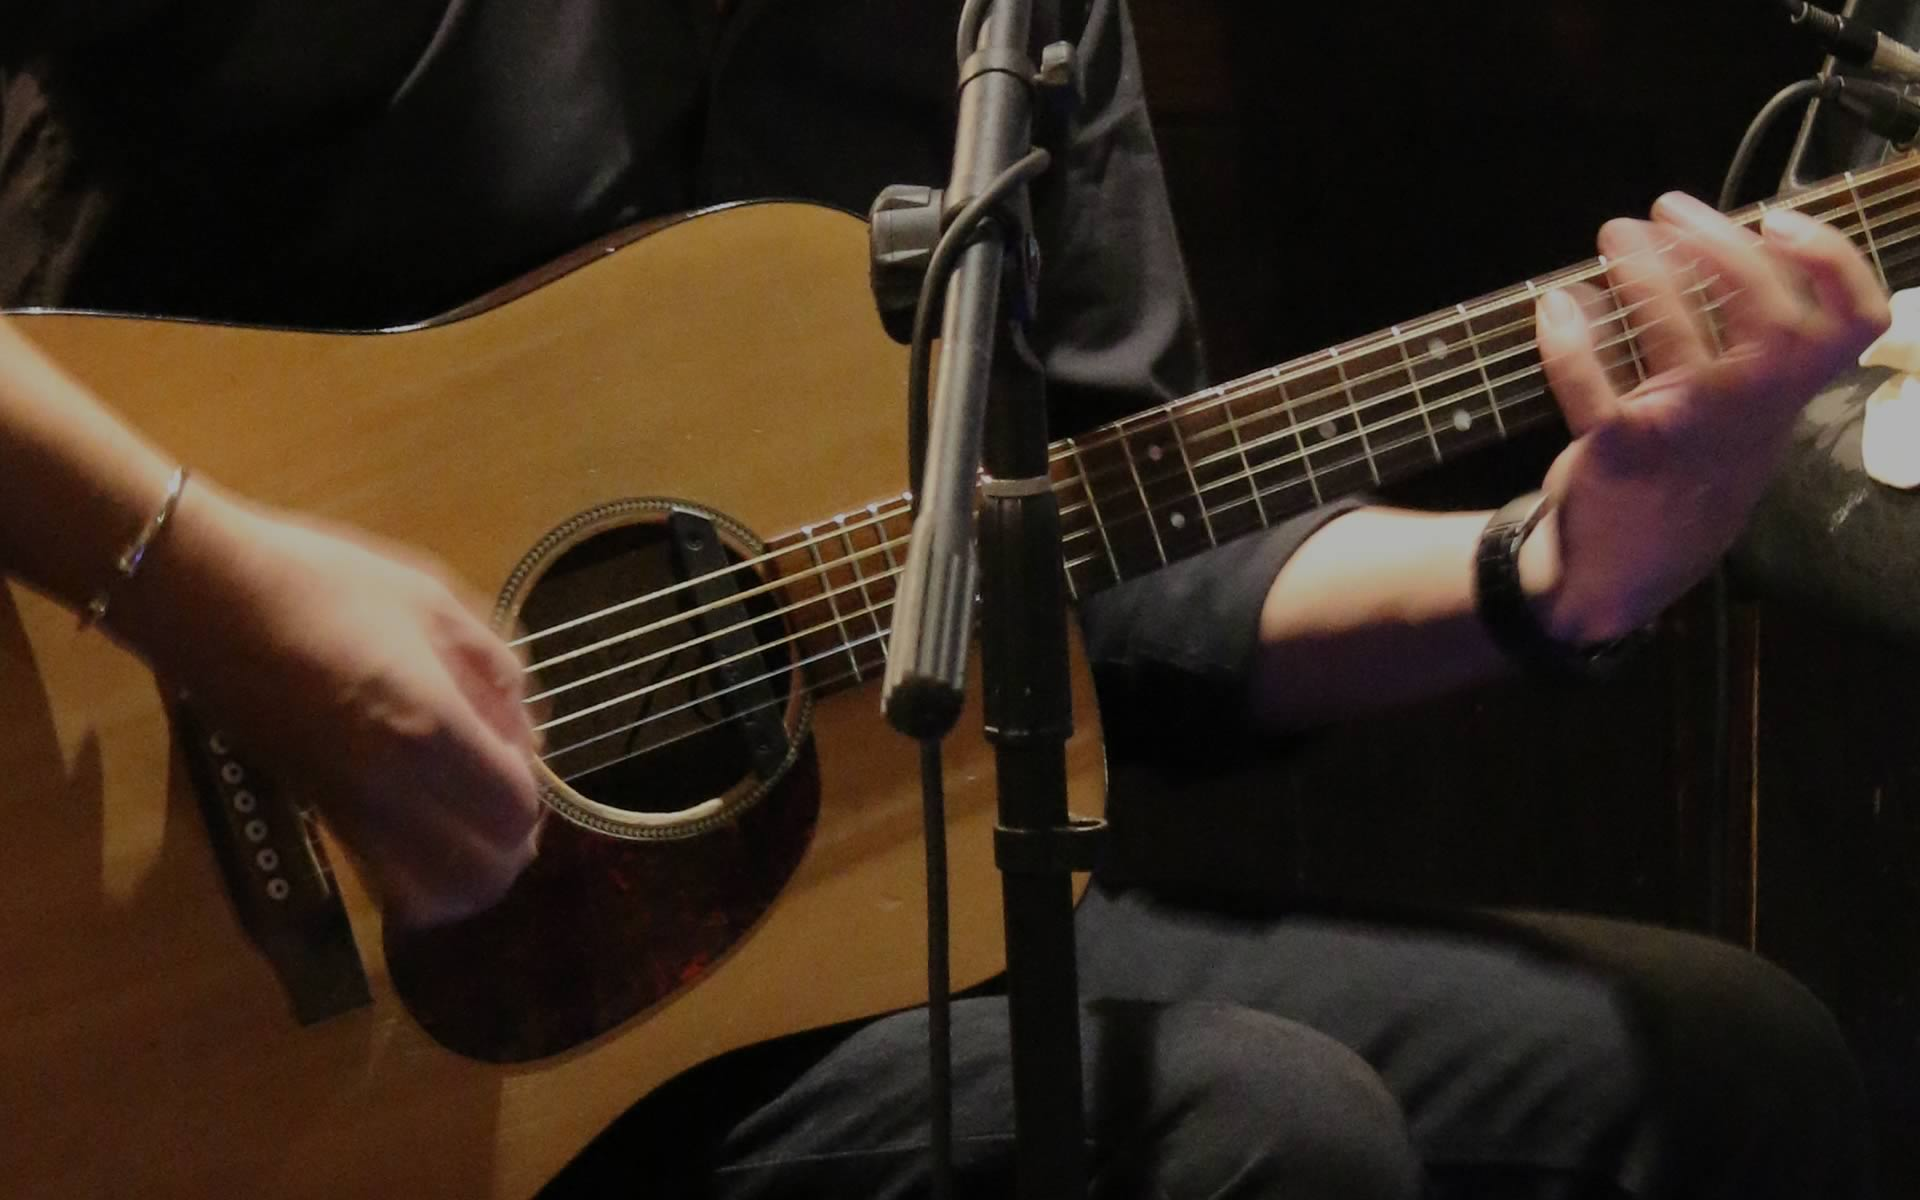 LIVE MUSIC AT THE OXTON BAR & KITCHEN